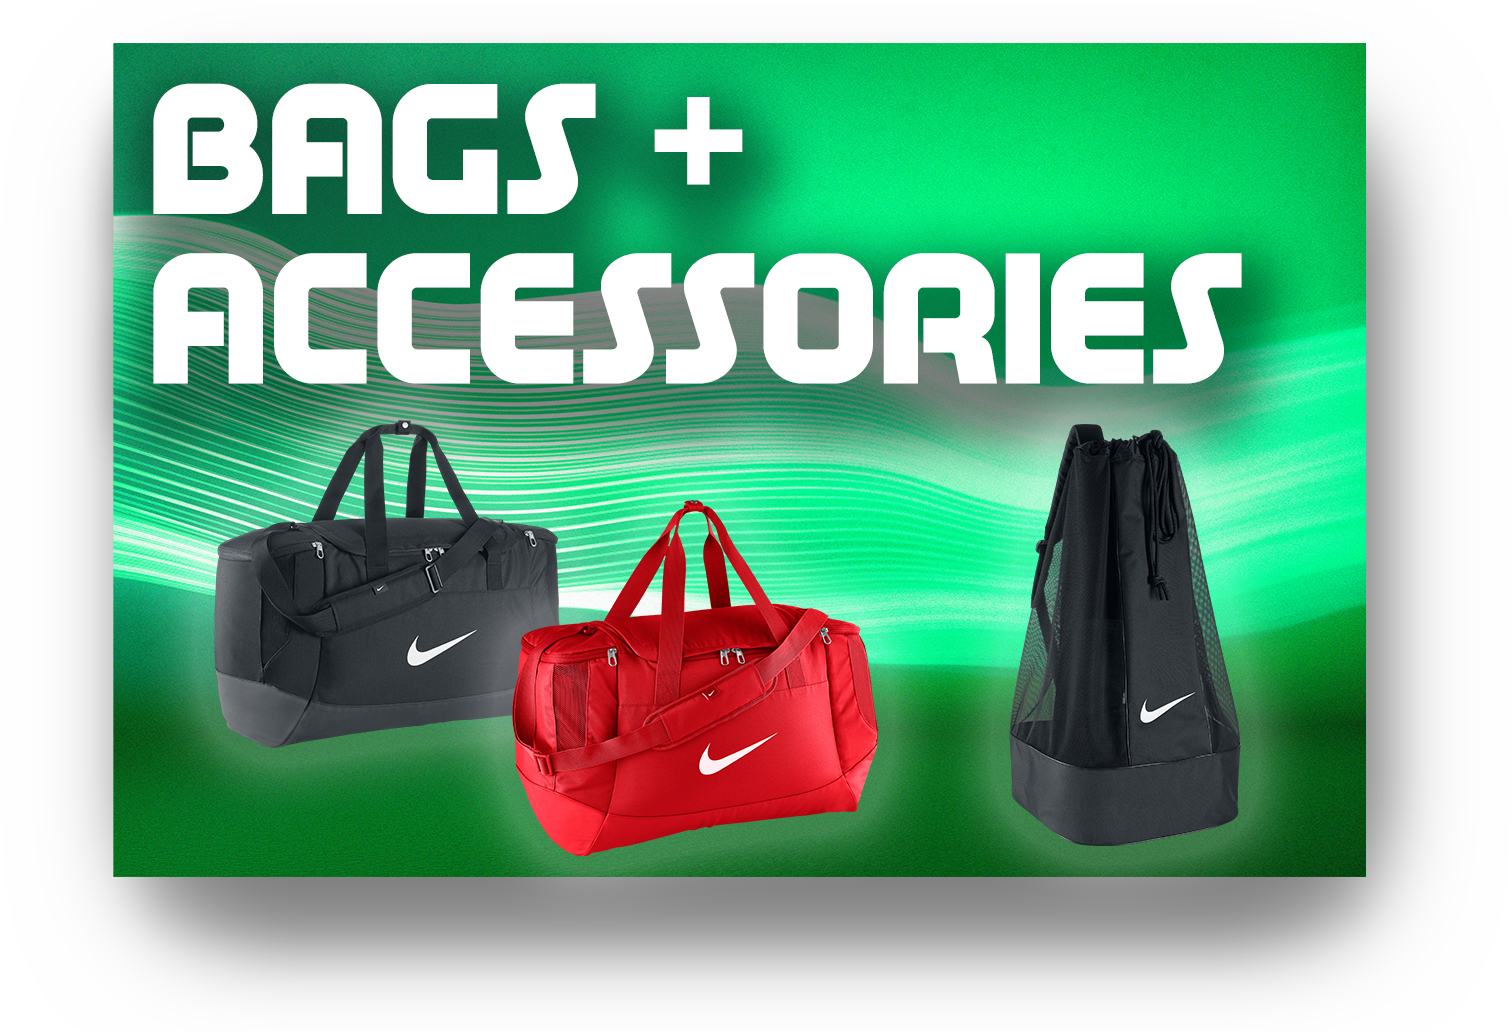 new-bags-accessories.jpg